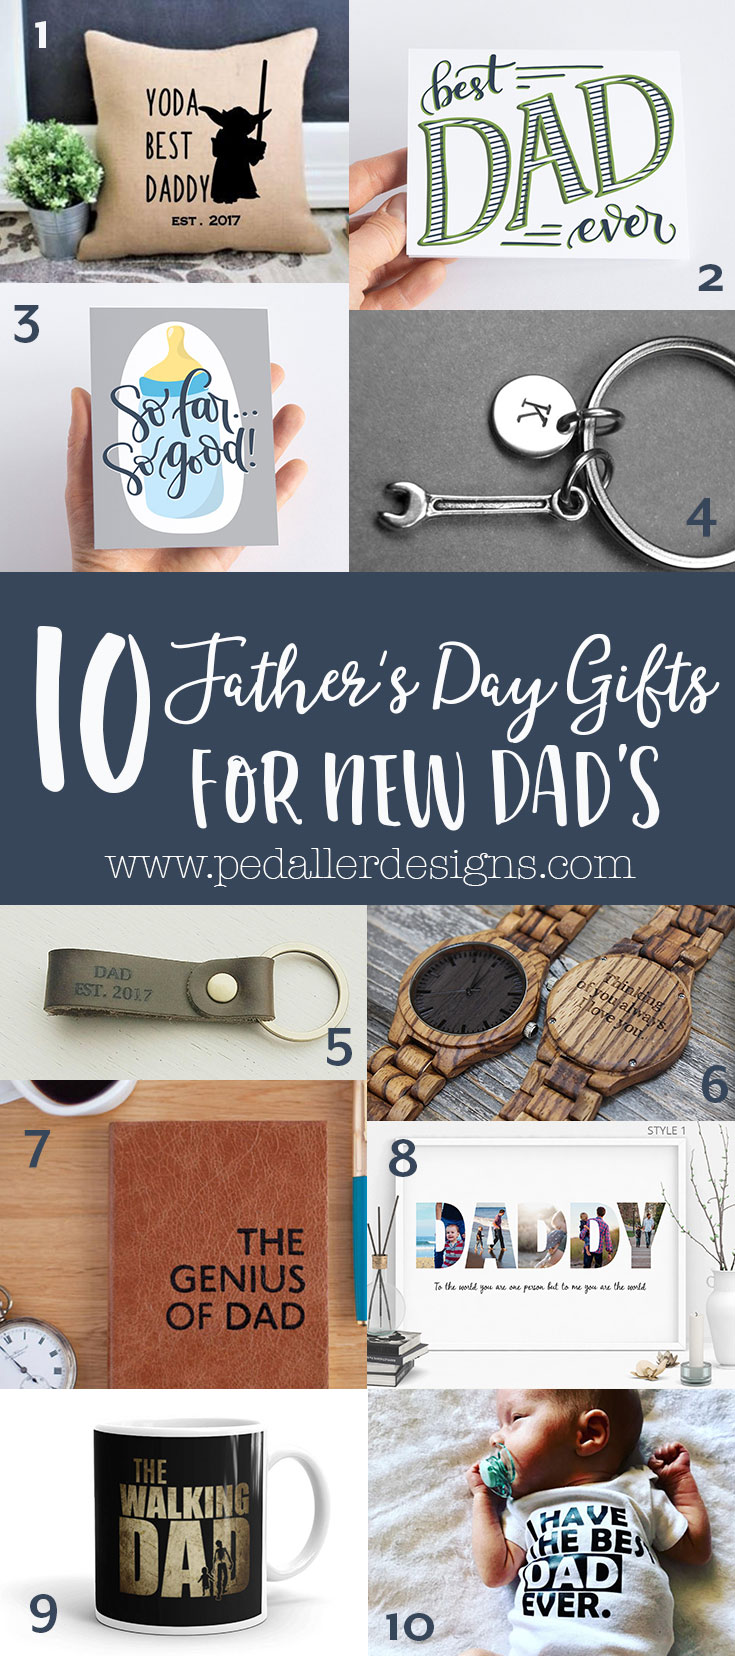 Need some Father's Day ideas for a new dad in your life? Look no further than my newest gift ideas for new dad's, click to get my top 10 favourites from some amazing handmade shops!